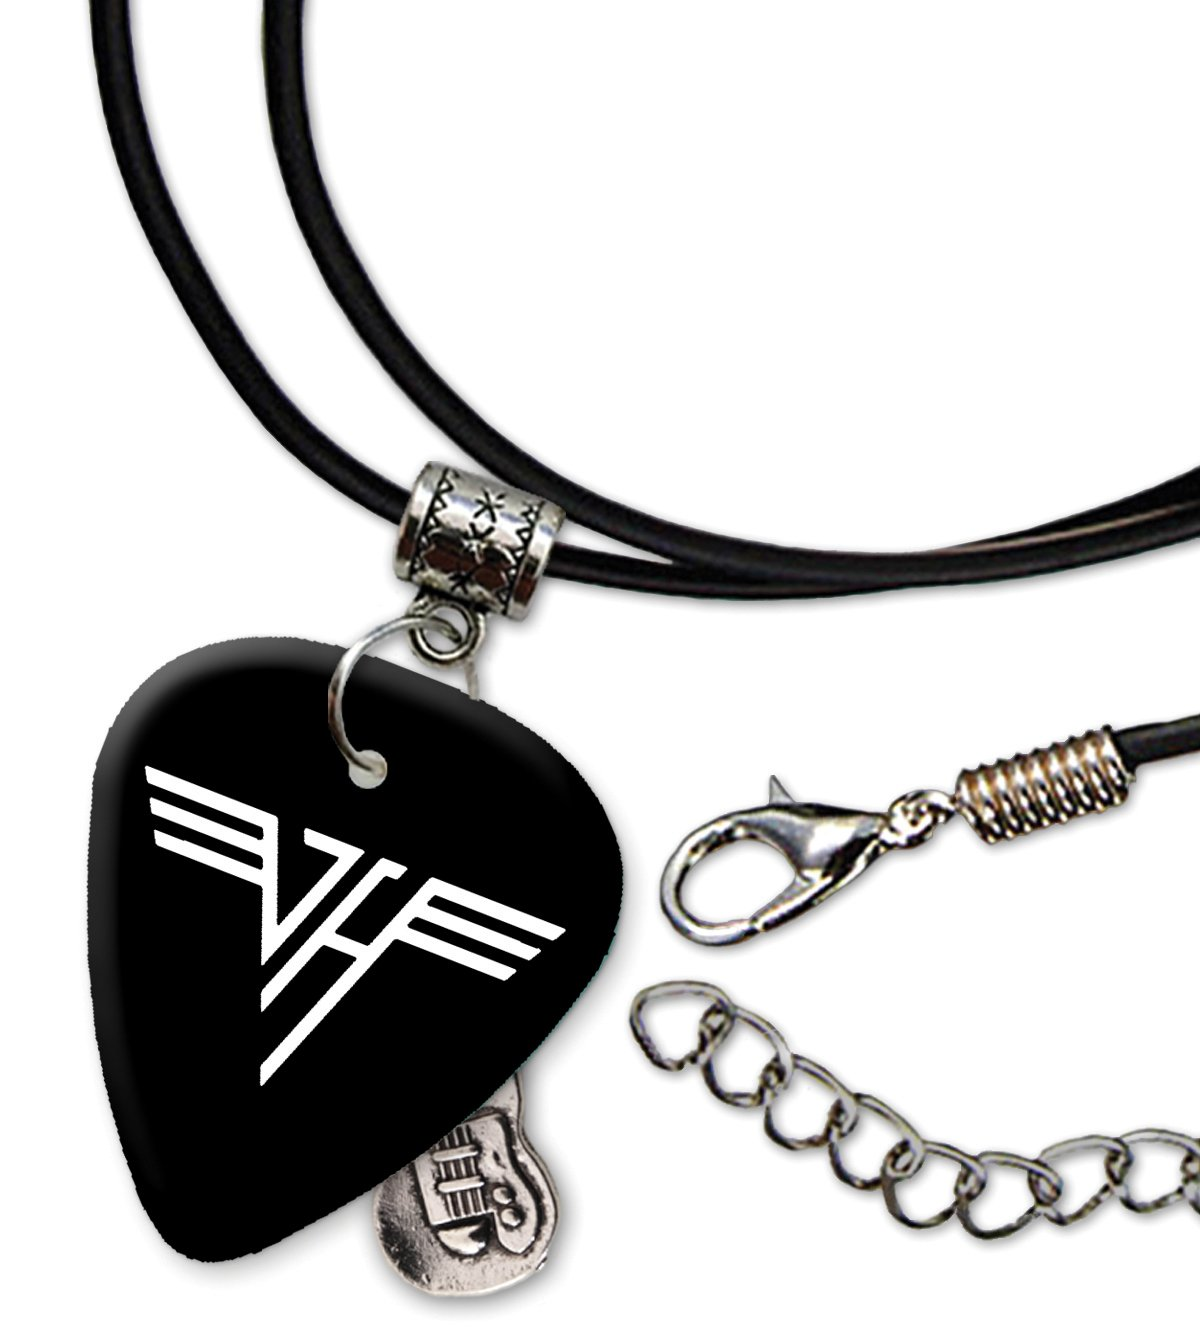 Van Halen Band Logo Collana di corda di chitarra plettro (H) We Love Guitars